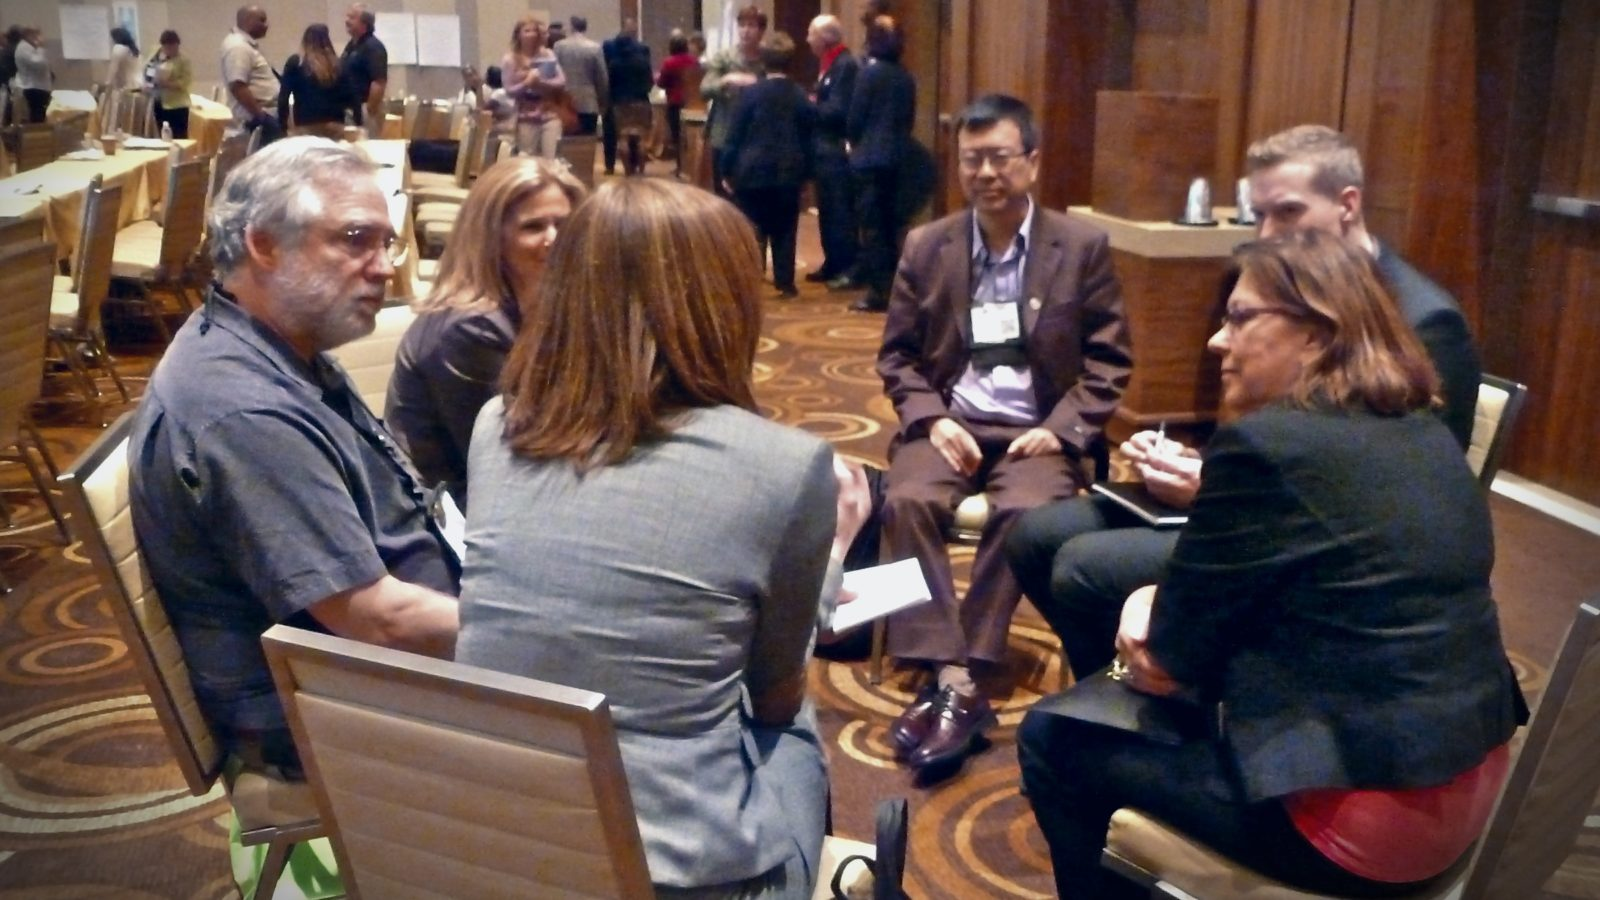 conference professional networking break-out group